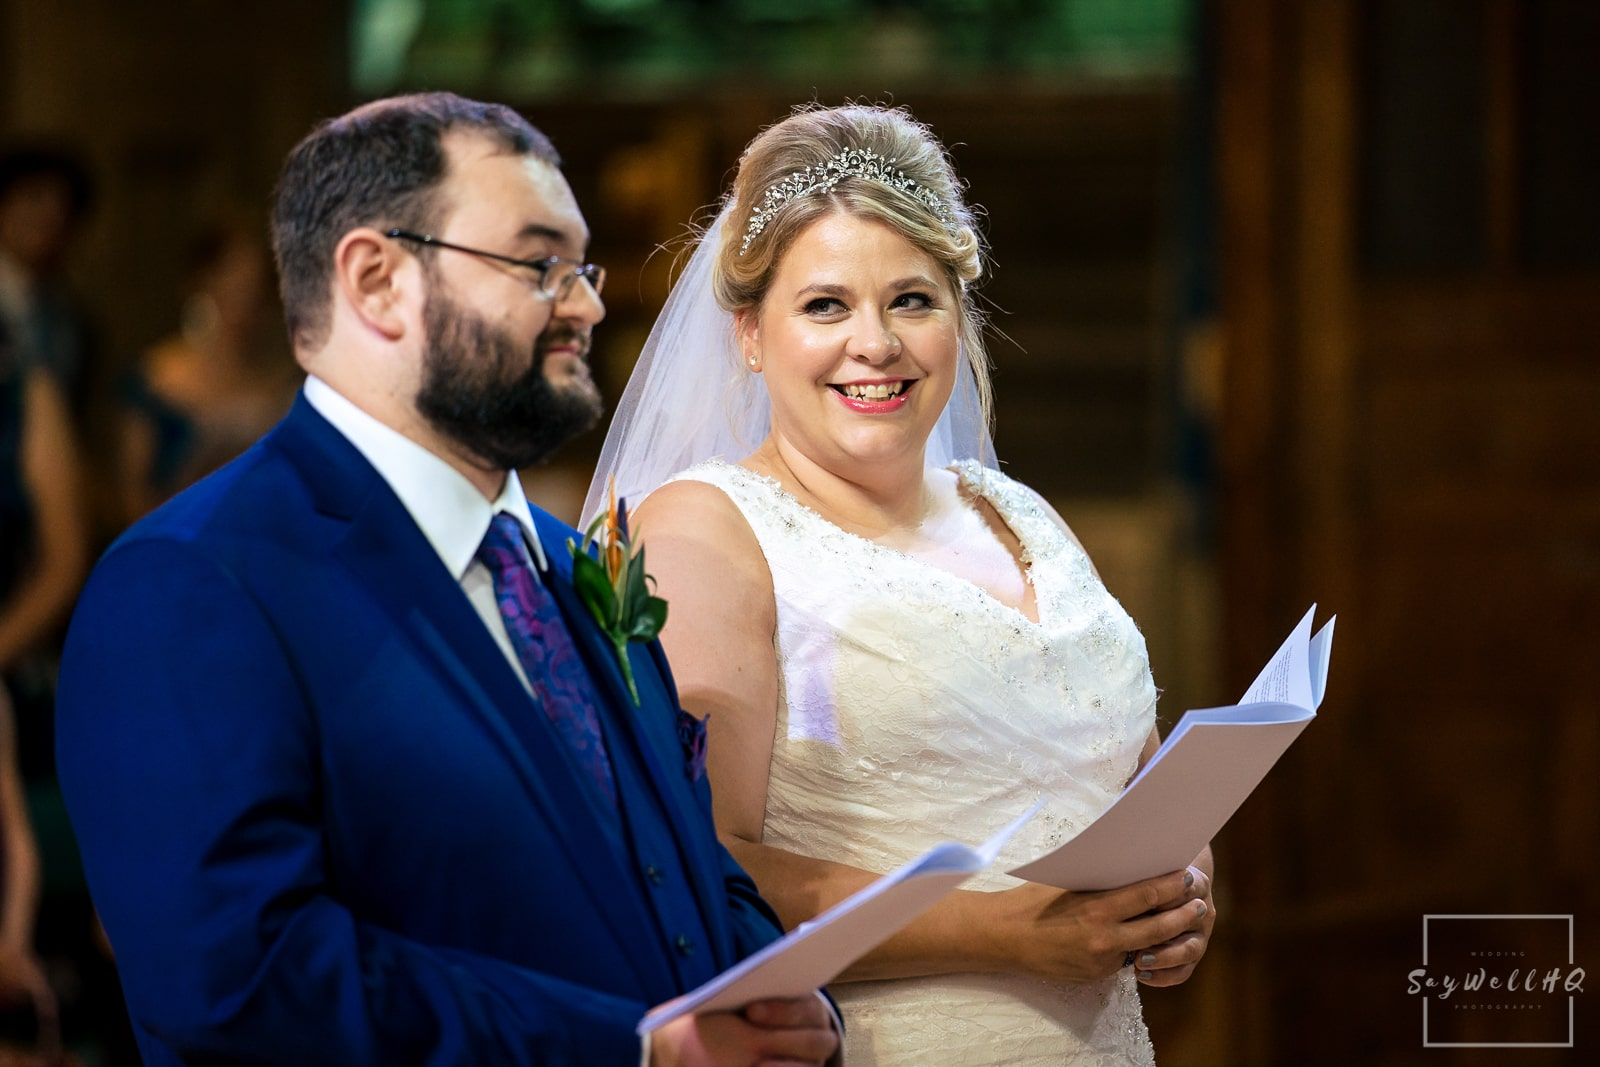 Buxton wedding photographer - Buxton Wedding Photography - Bride looking at her Groom during the Church wedding ceremony